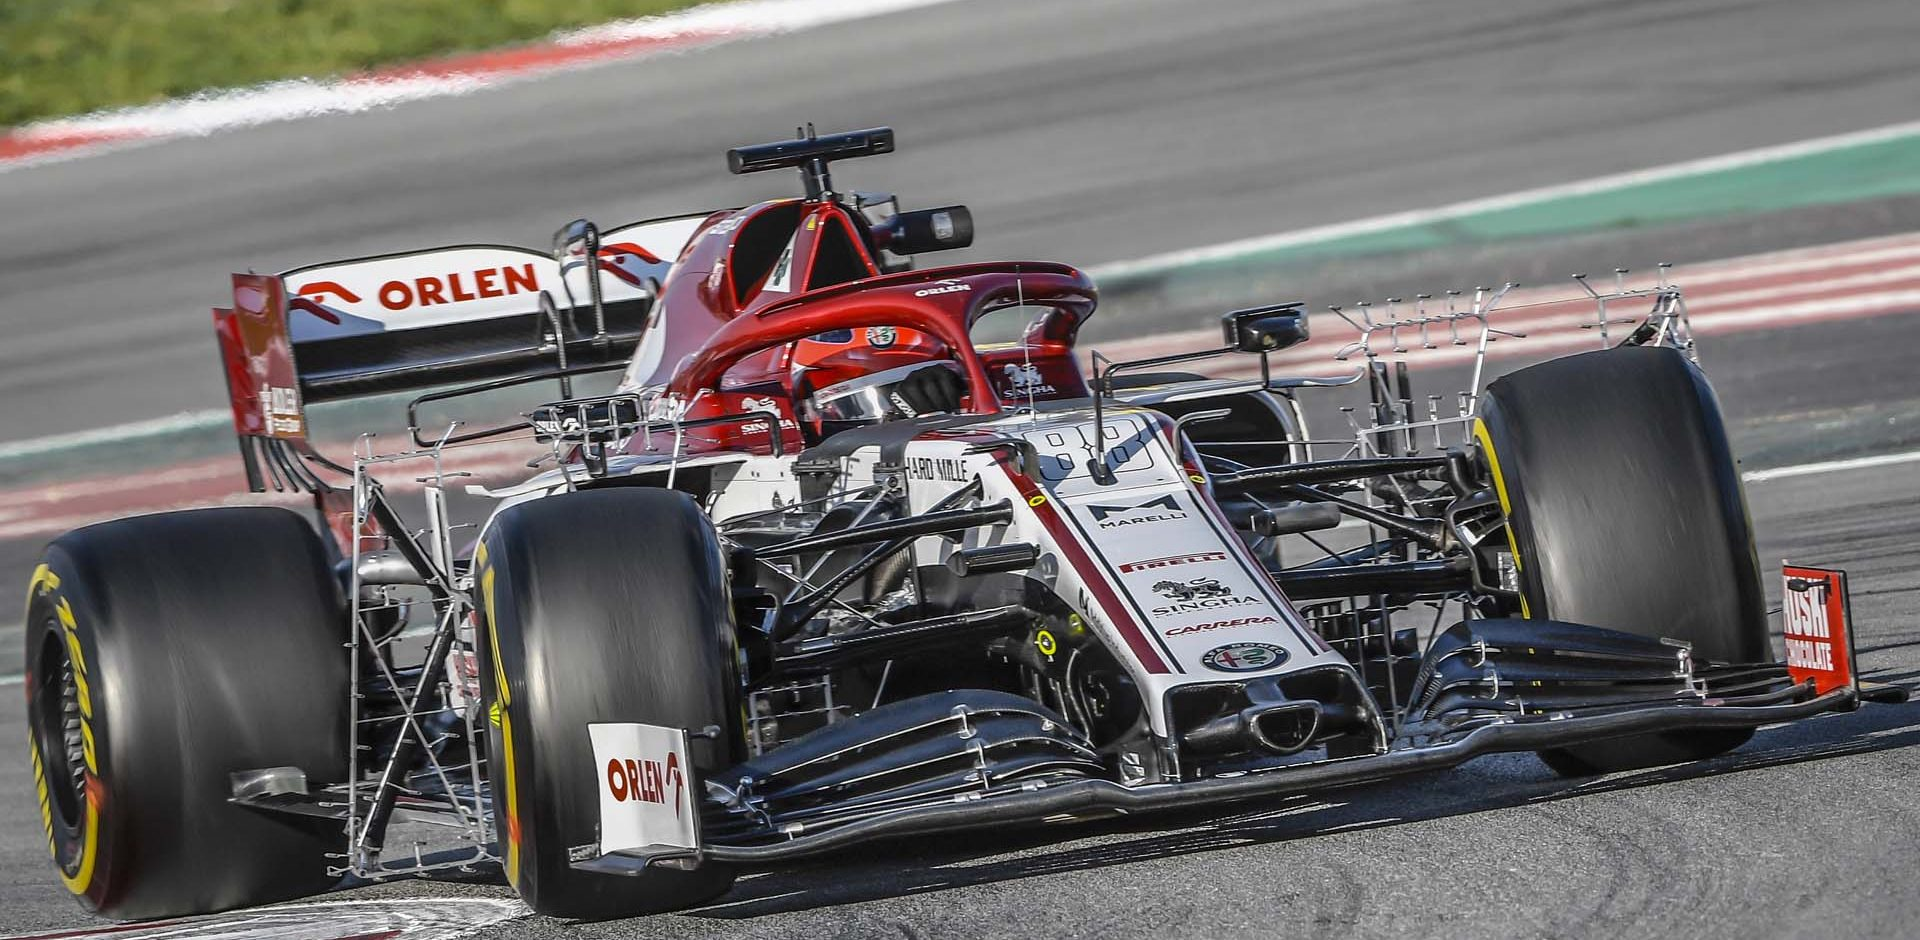 88 KUBICA Robert (pol), Alfa Romeo Racing C39, action  during the second session of the Formula 1 Pre-season testing 2020 from February 26 to 28, 2020 on the Circuit de Barcelona-Catalunya, in Montmelo, Barcelona, Spain - Photo Eric Vargiolu / DPPI